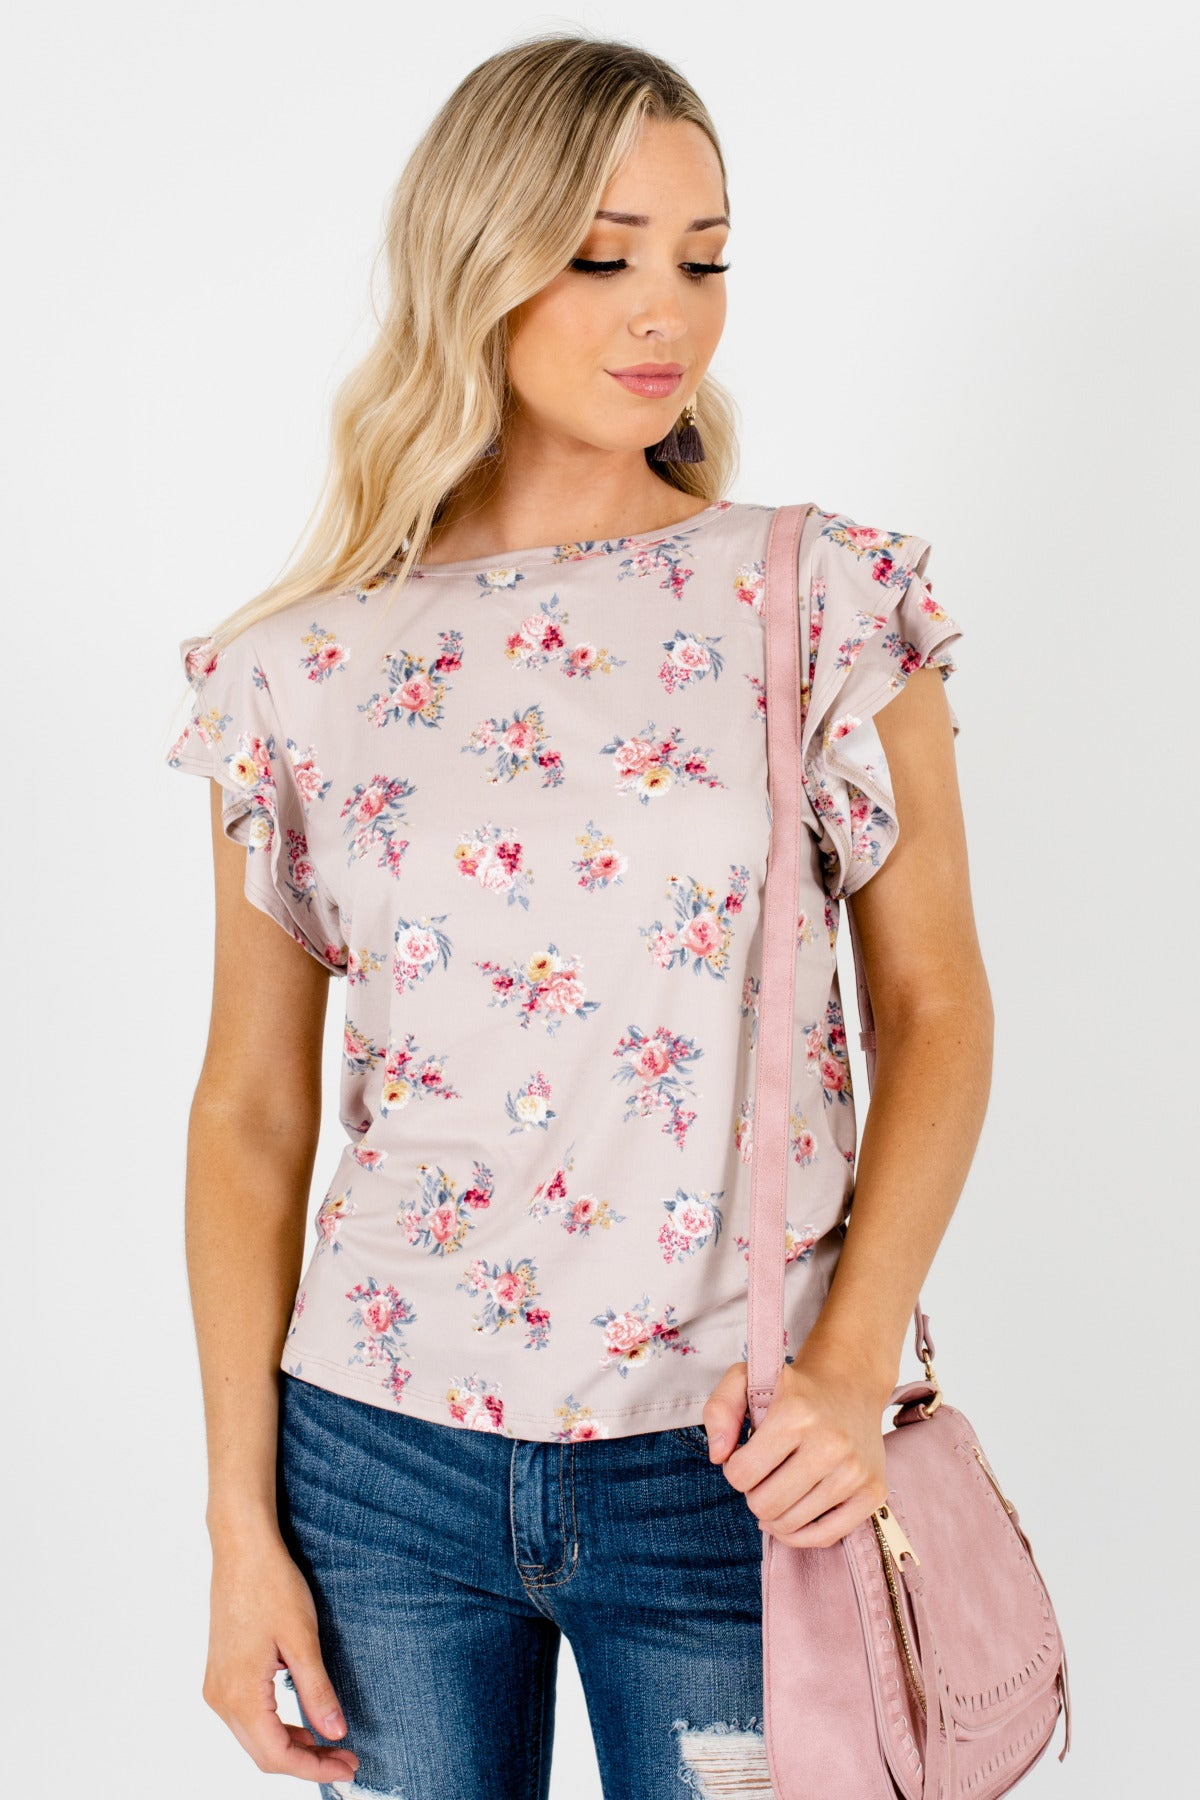 Taupe Brown Rose Floral Ruffle Sleeve Soft Stretchy Tops for Women